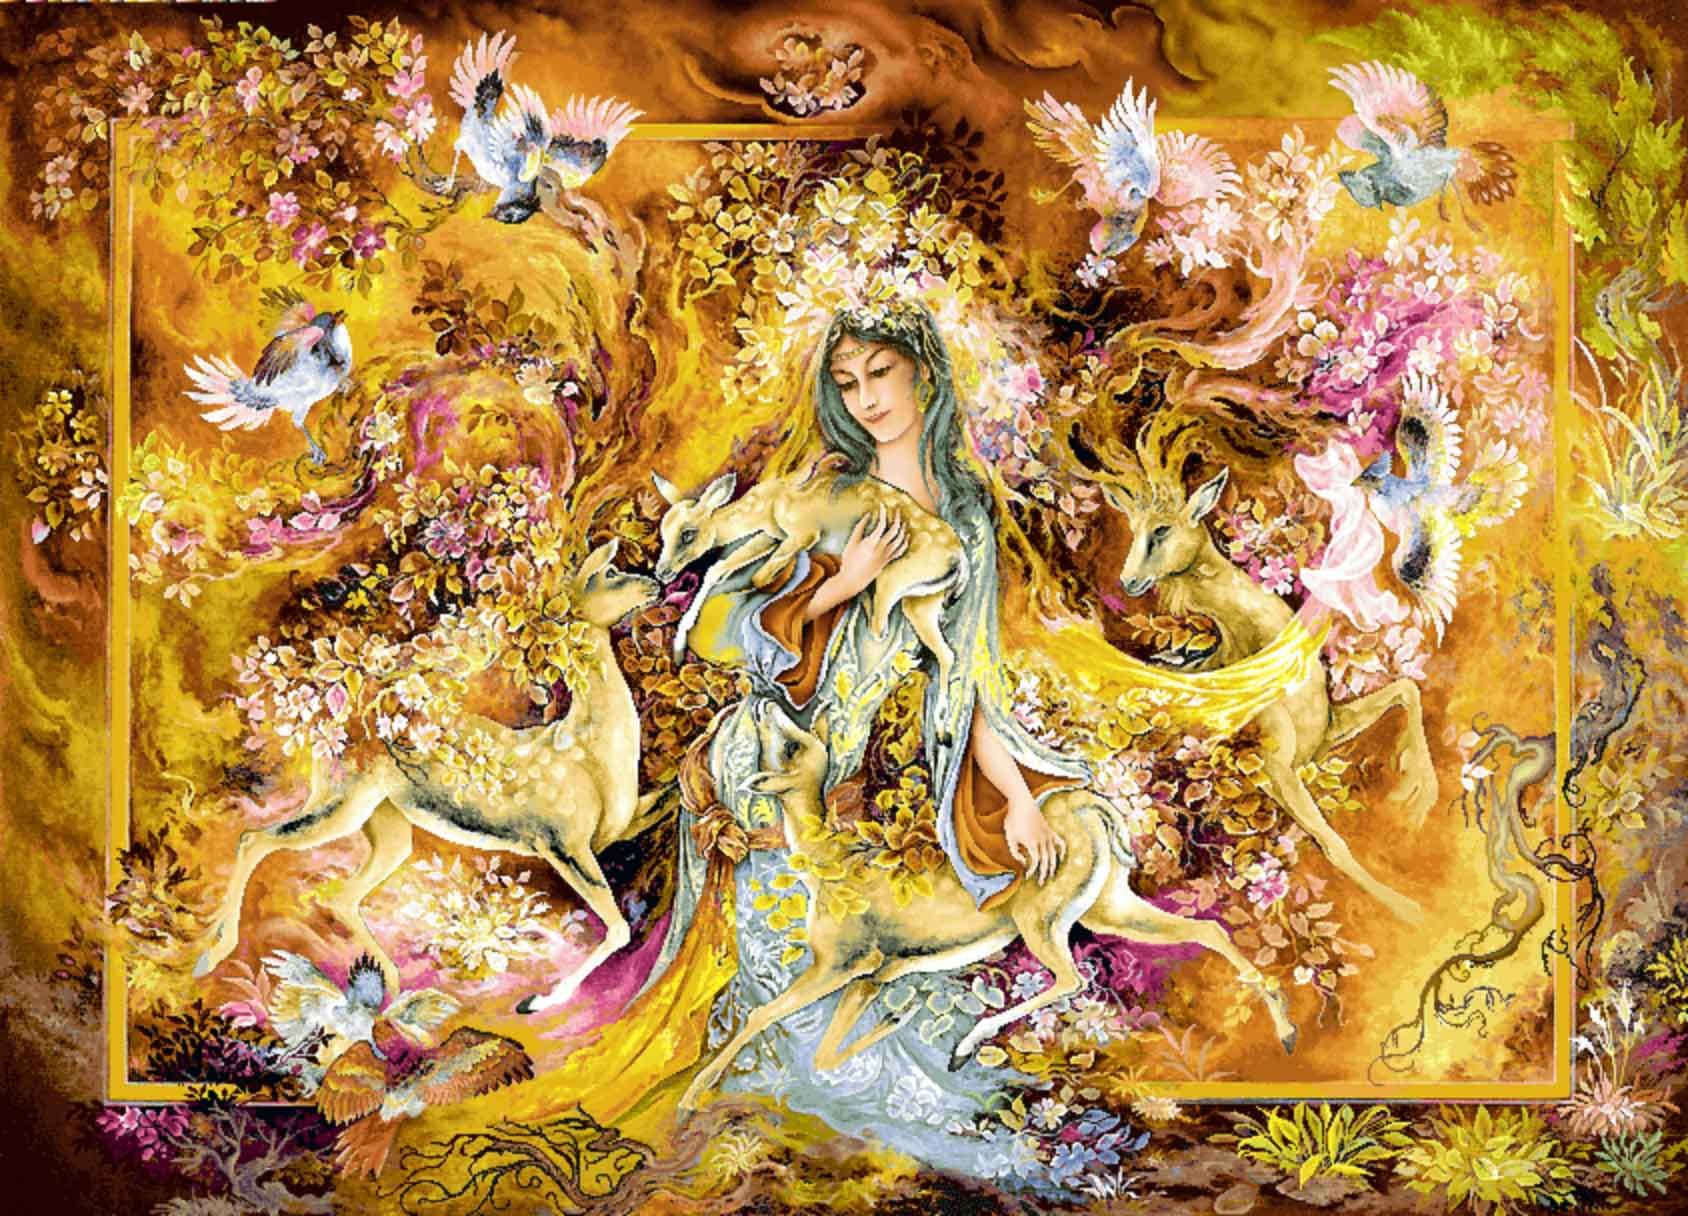 tc_copy.jpg (1688×1216) | reza | Pinterest | Josephine wall